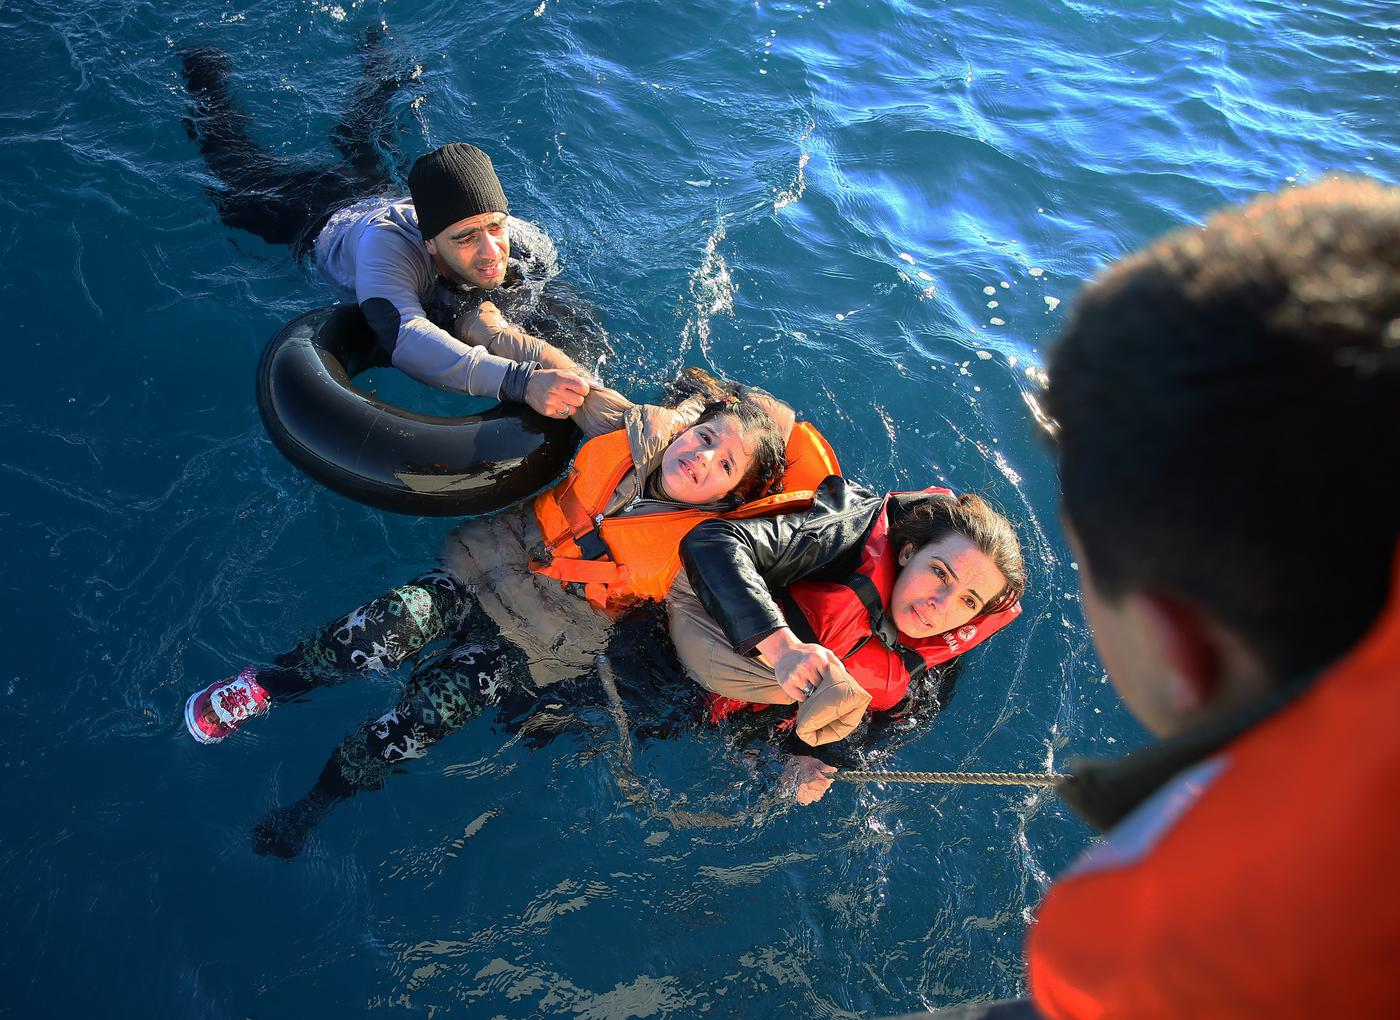 AYDIN, TURKEY - JANUARY 22: Turkish Coast Guard personnel help refugees as they swim with buoys, after they toppled over a fishermen dinghy en route to Greece on January 22, 2016 in Didim district of Aydin, Turkey. 4 refugees body including 3 children pulled out of the water as Turkish coast guard personnel rescued 43 others. (Photo by Emin Menguarslan/Anadolu Agency/Getty Images)